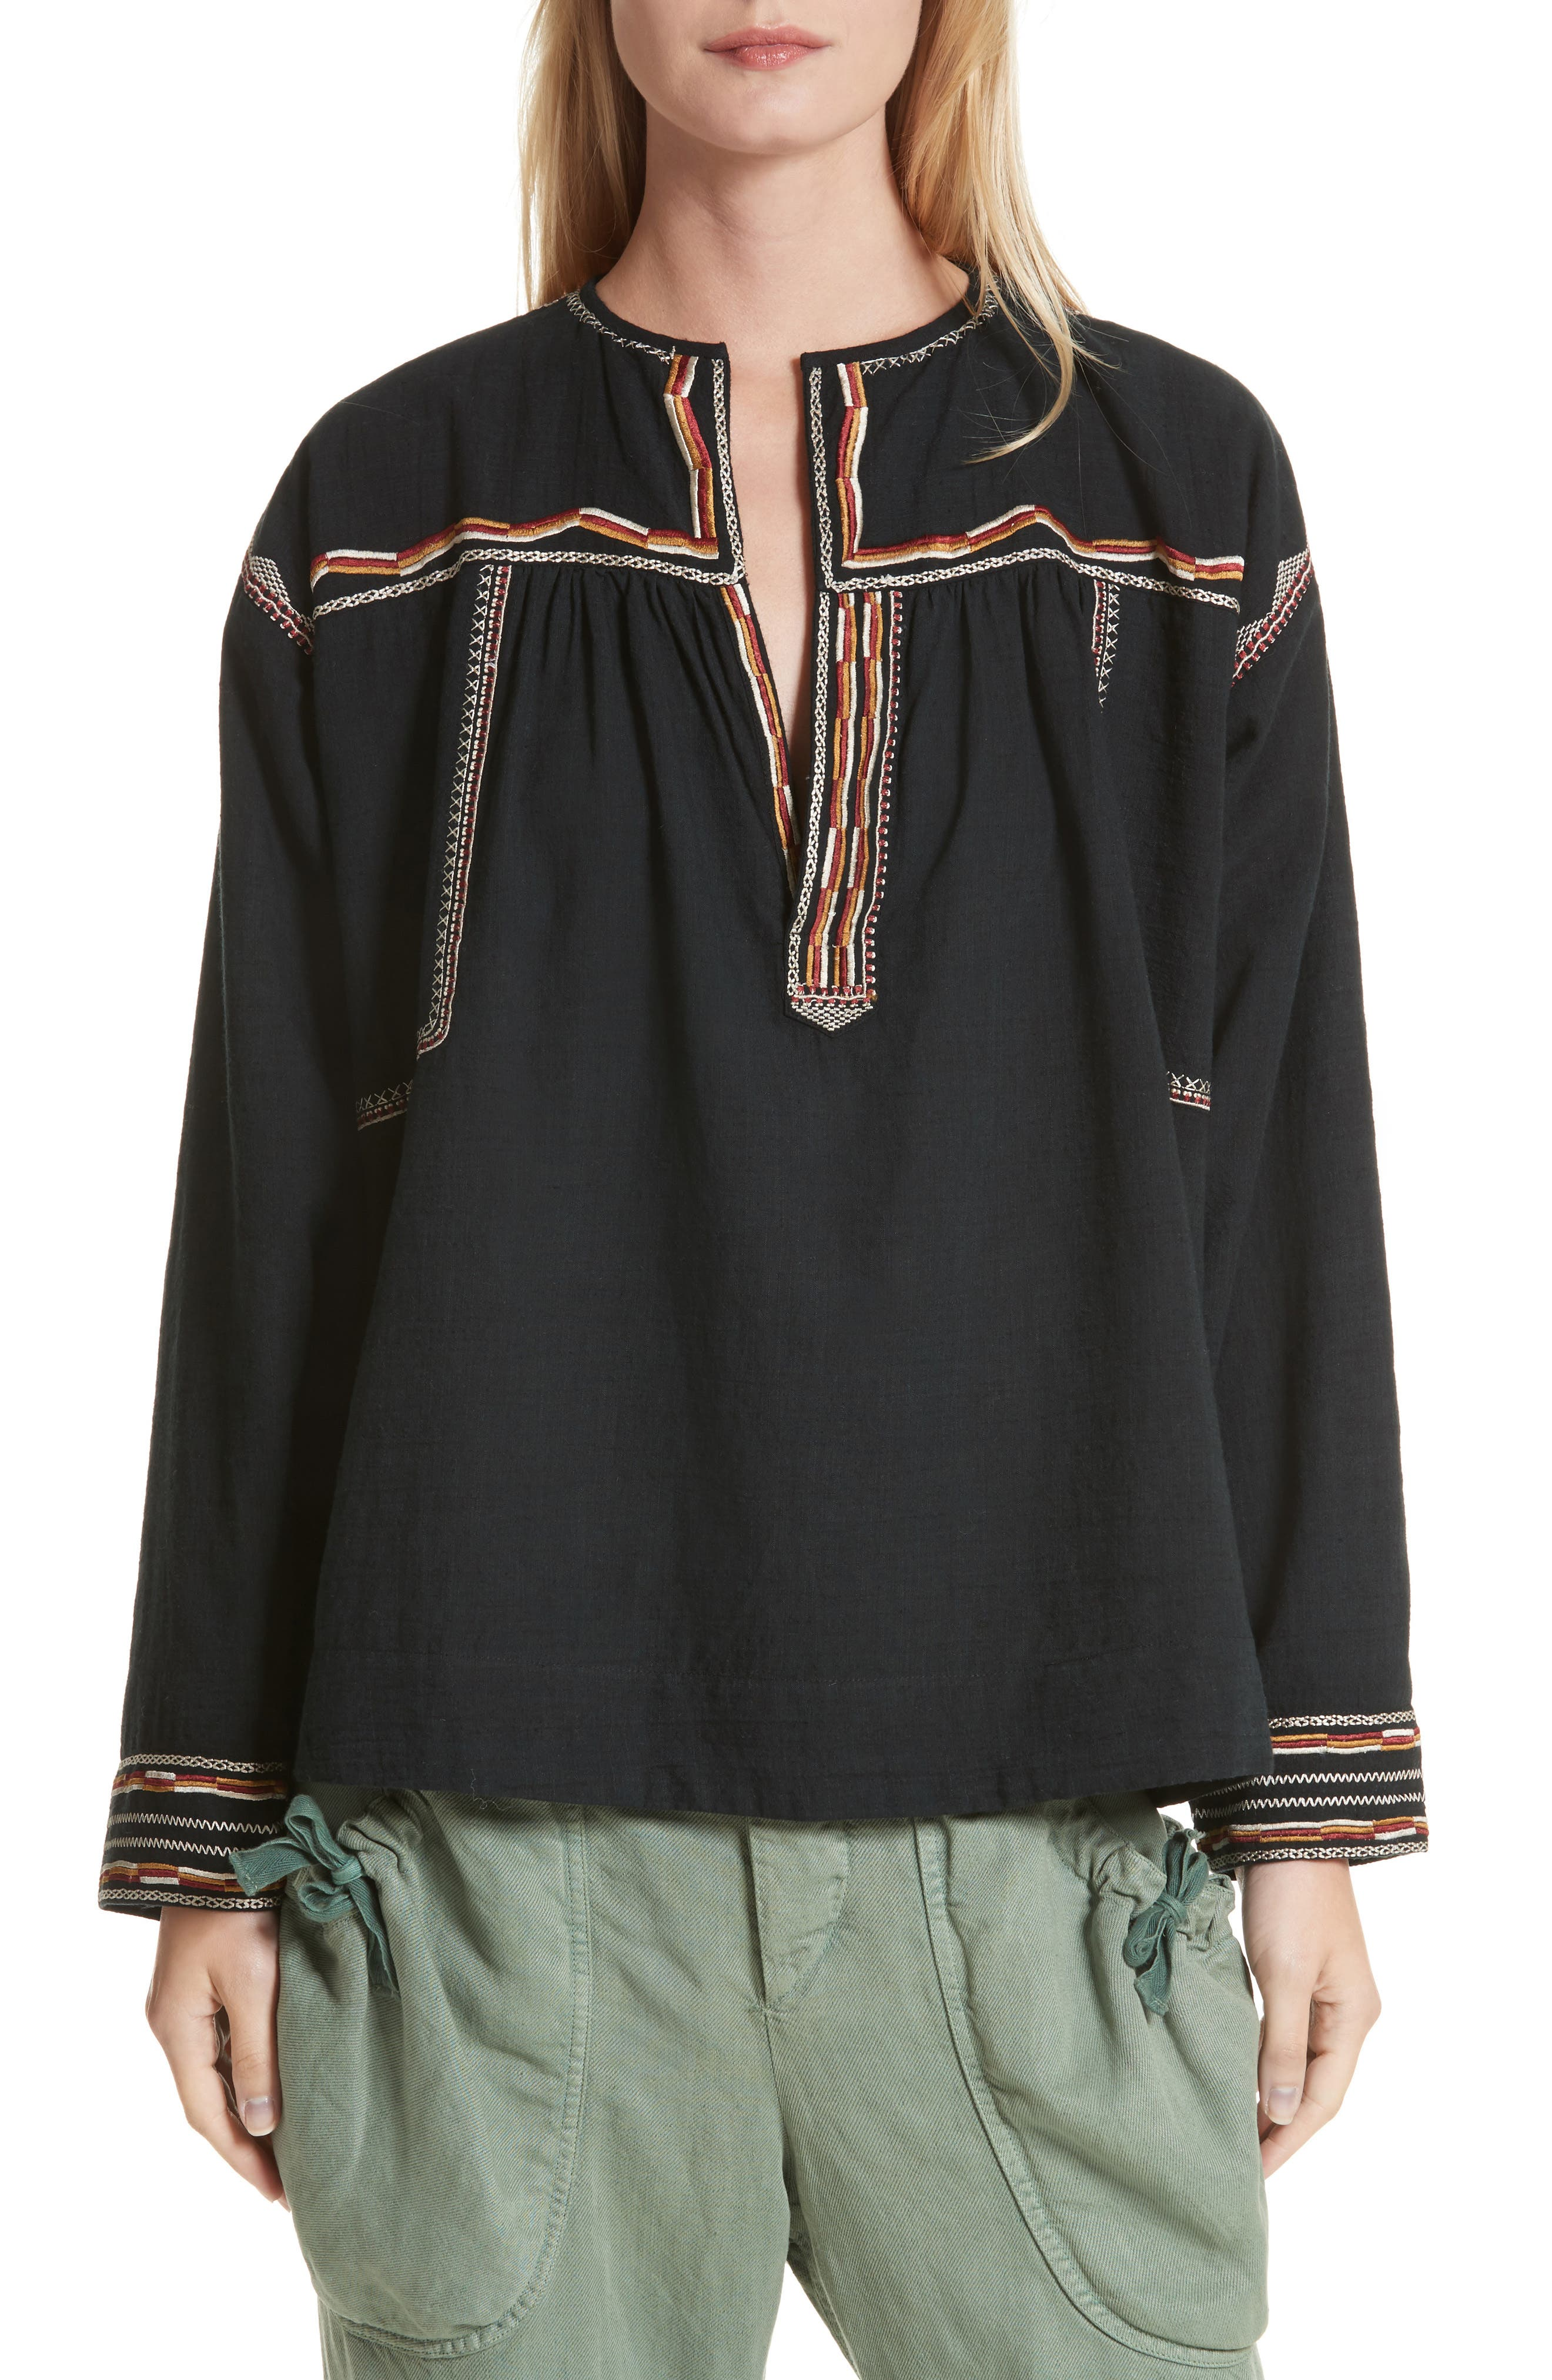 Isabel Marant Étoile Blicky Embroidered Top